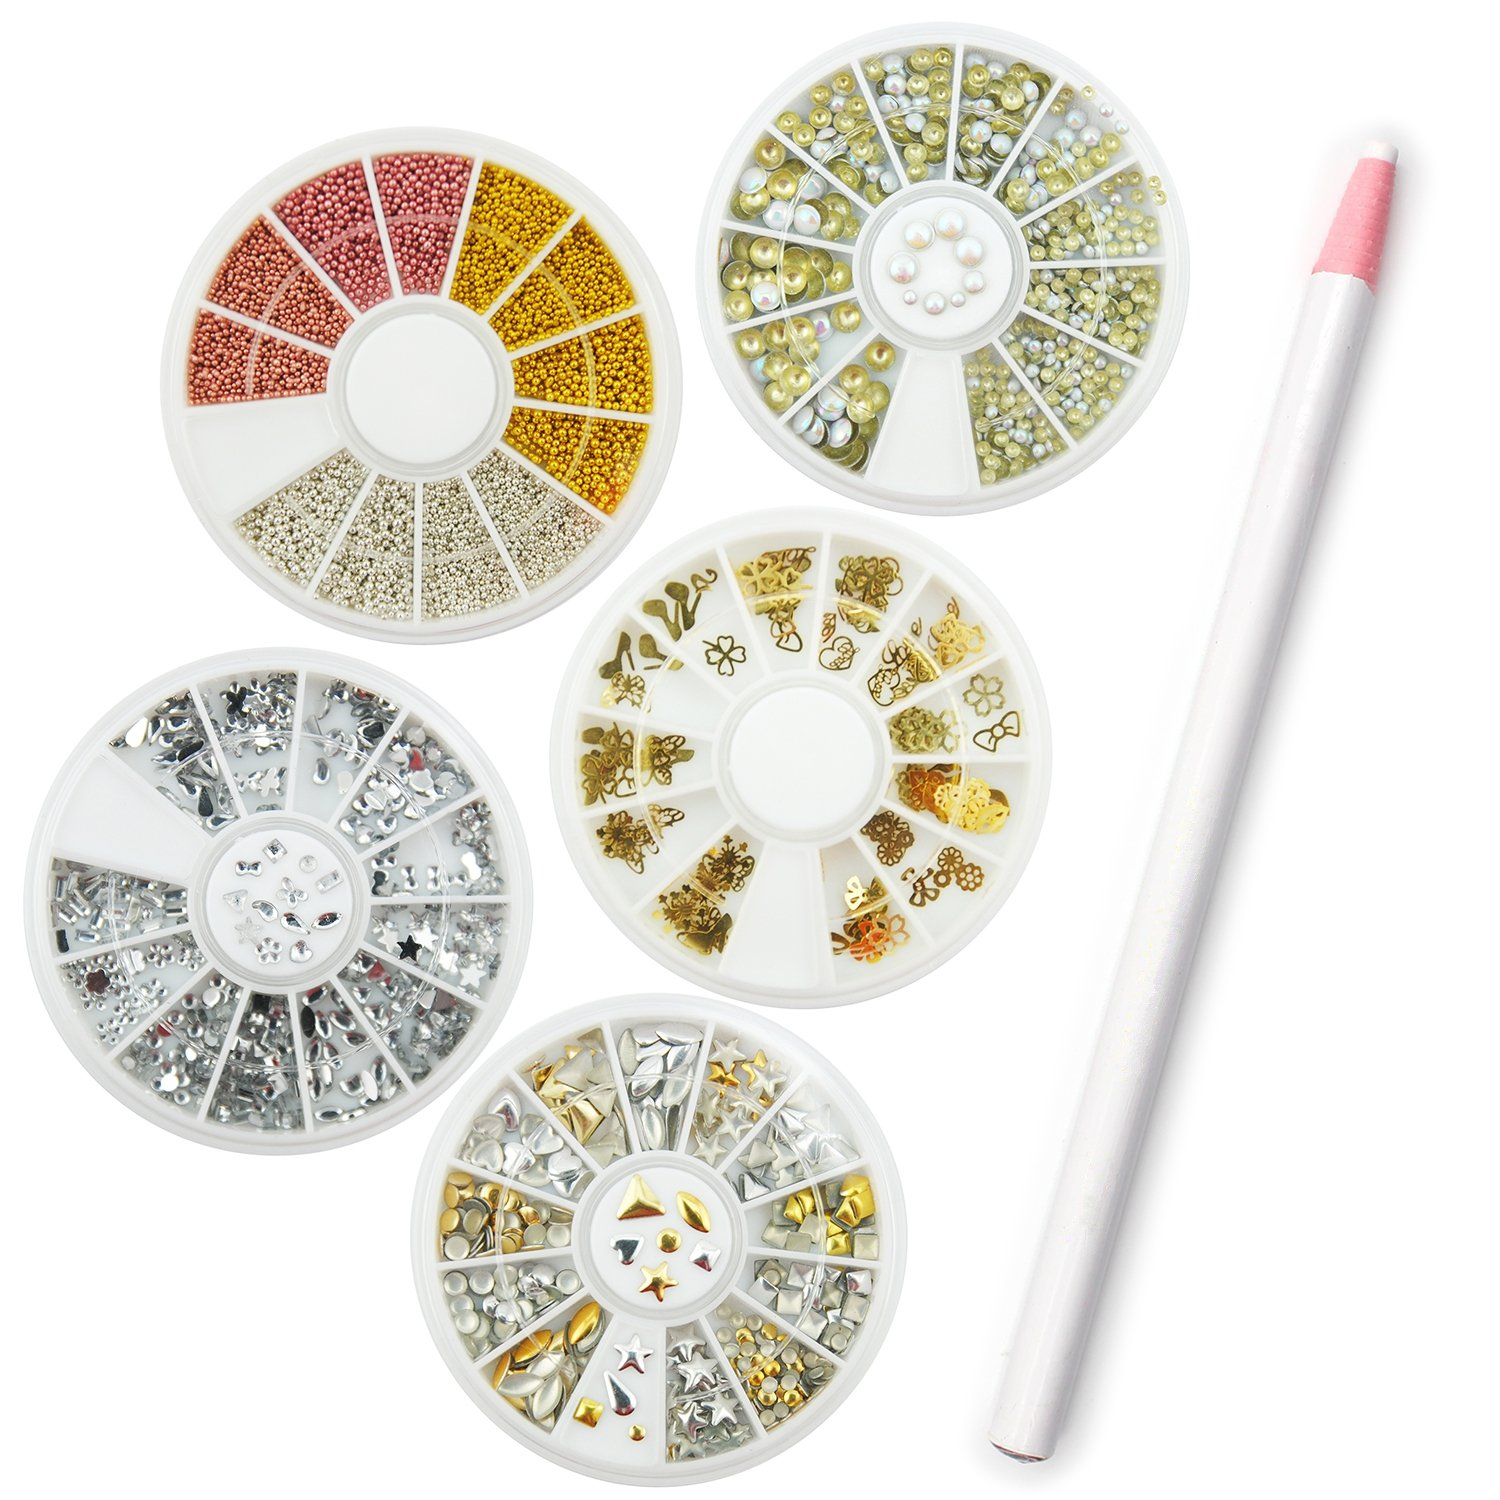 Coscelia Nail Art Rhinestones Gems Picking Crystal Tool Wax Pencil Pen Varied Colors of Rhinestones